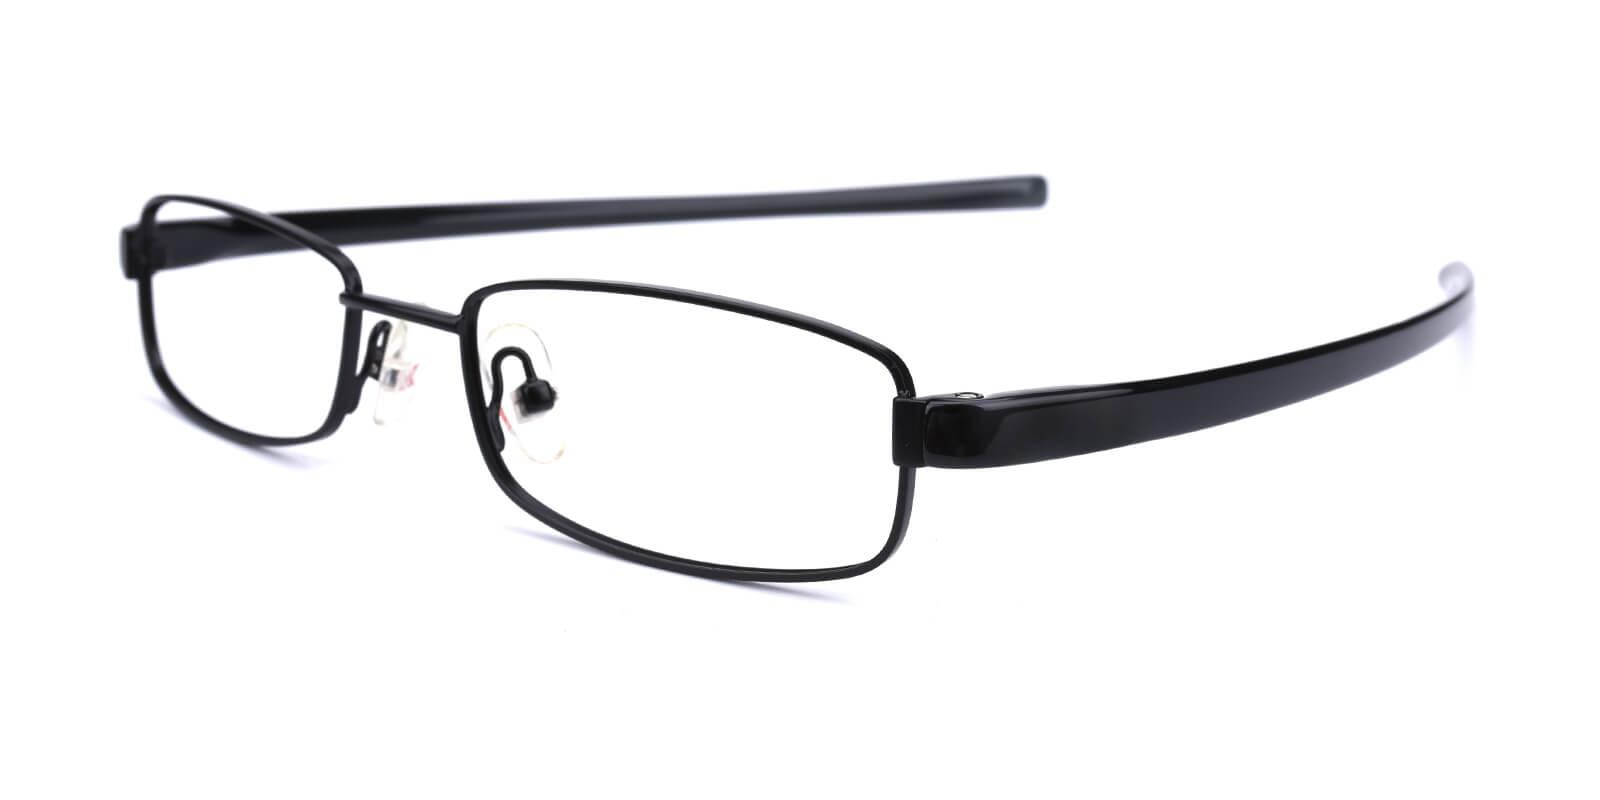 Slender-Black-Rectangle-Metal-Eyeglasses-additional1